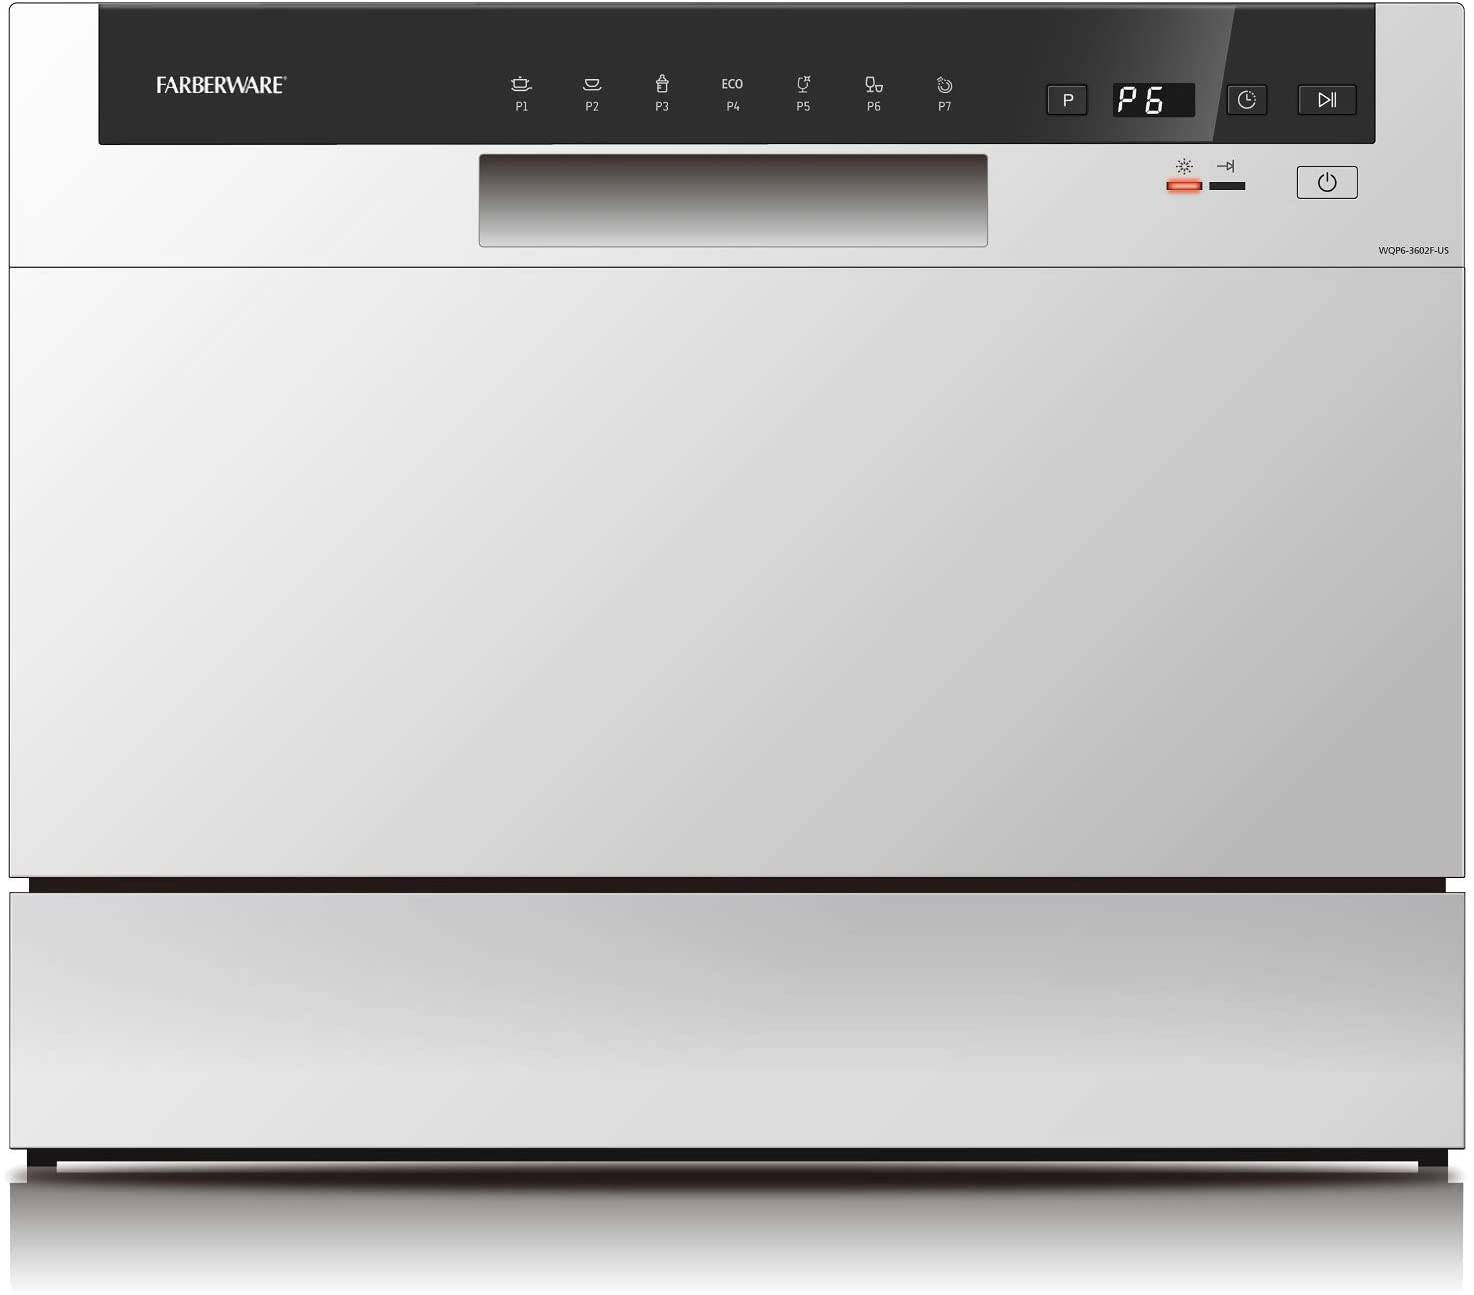 Farberware FCD06ABBWHA Countertop Dishwasher